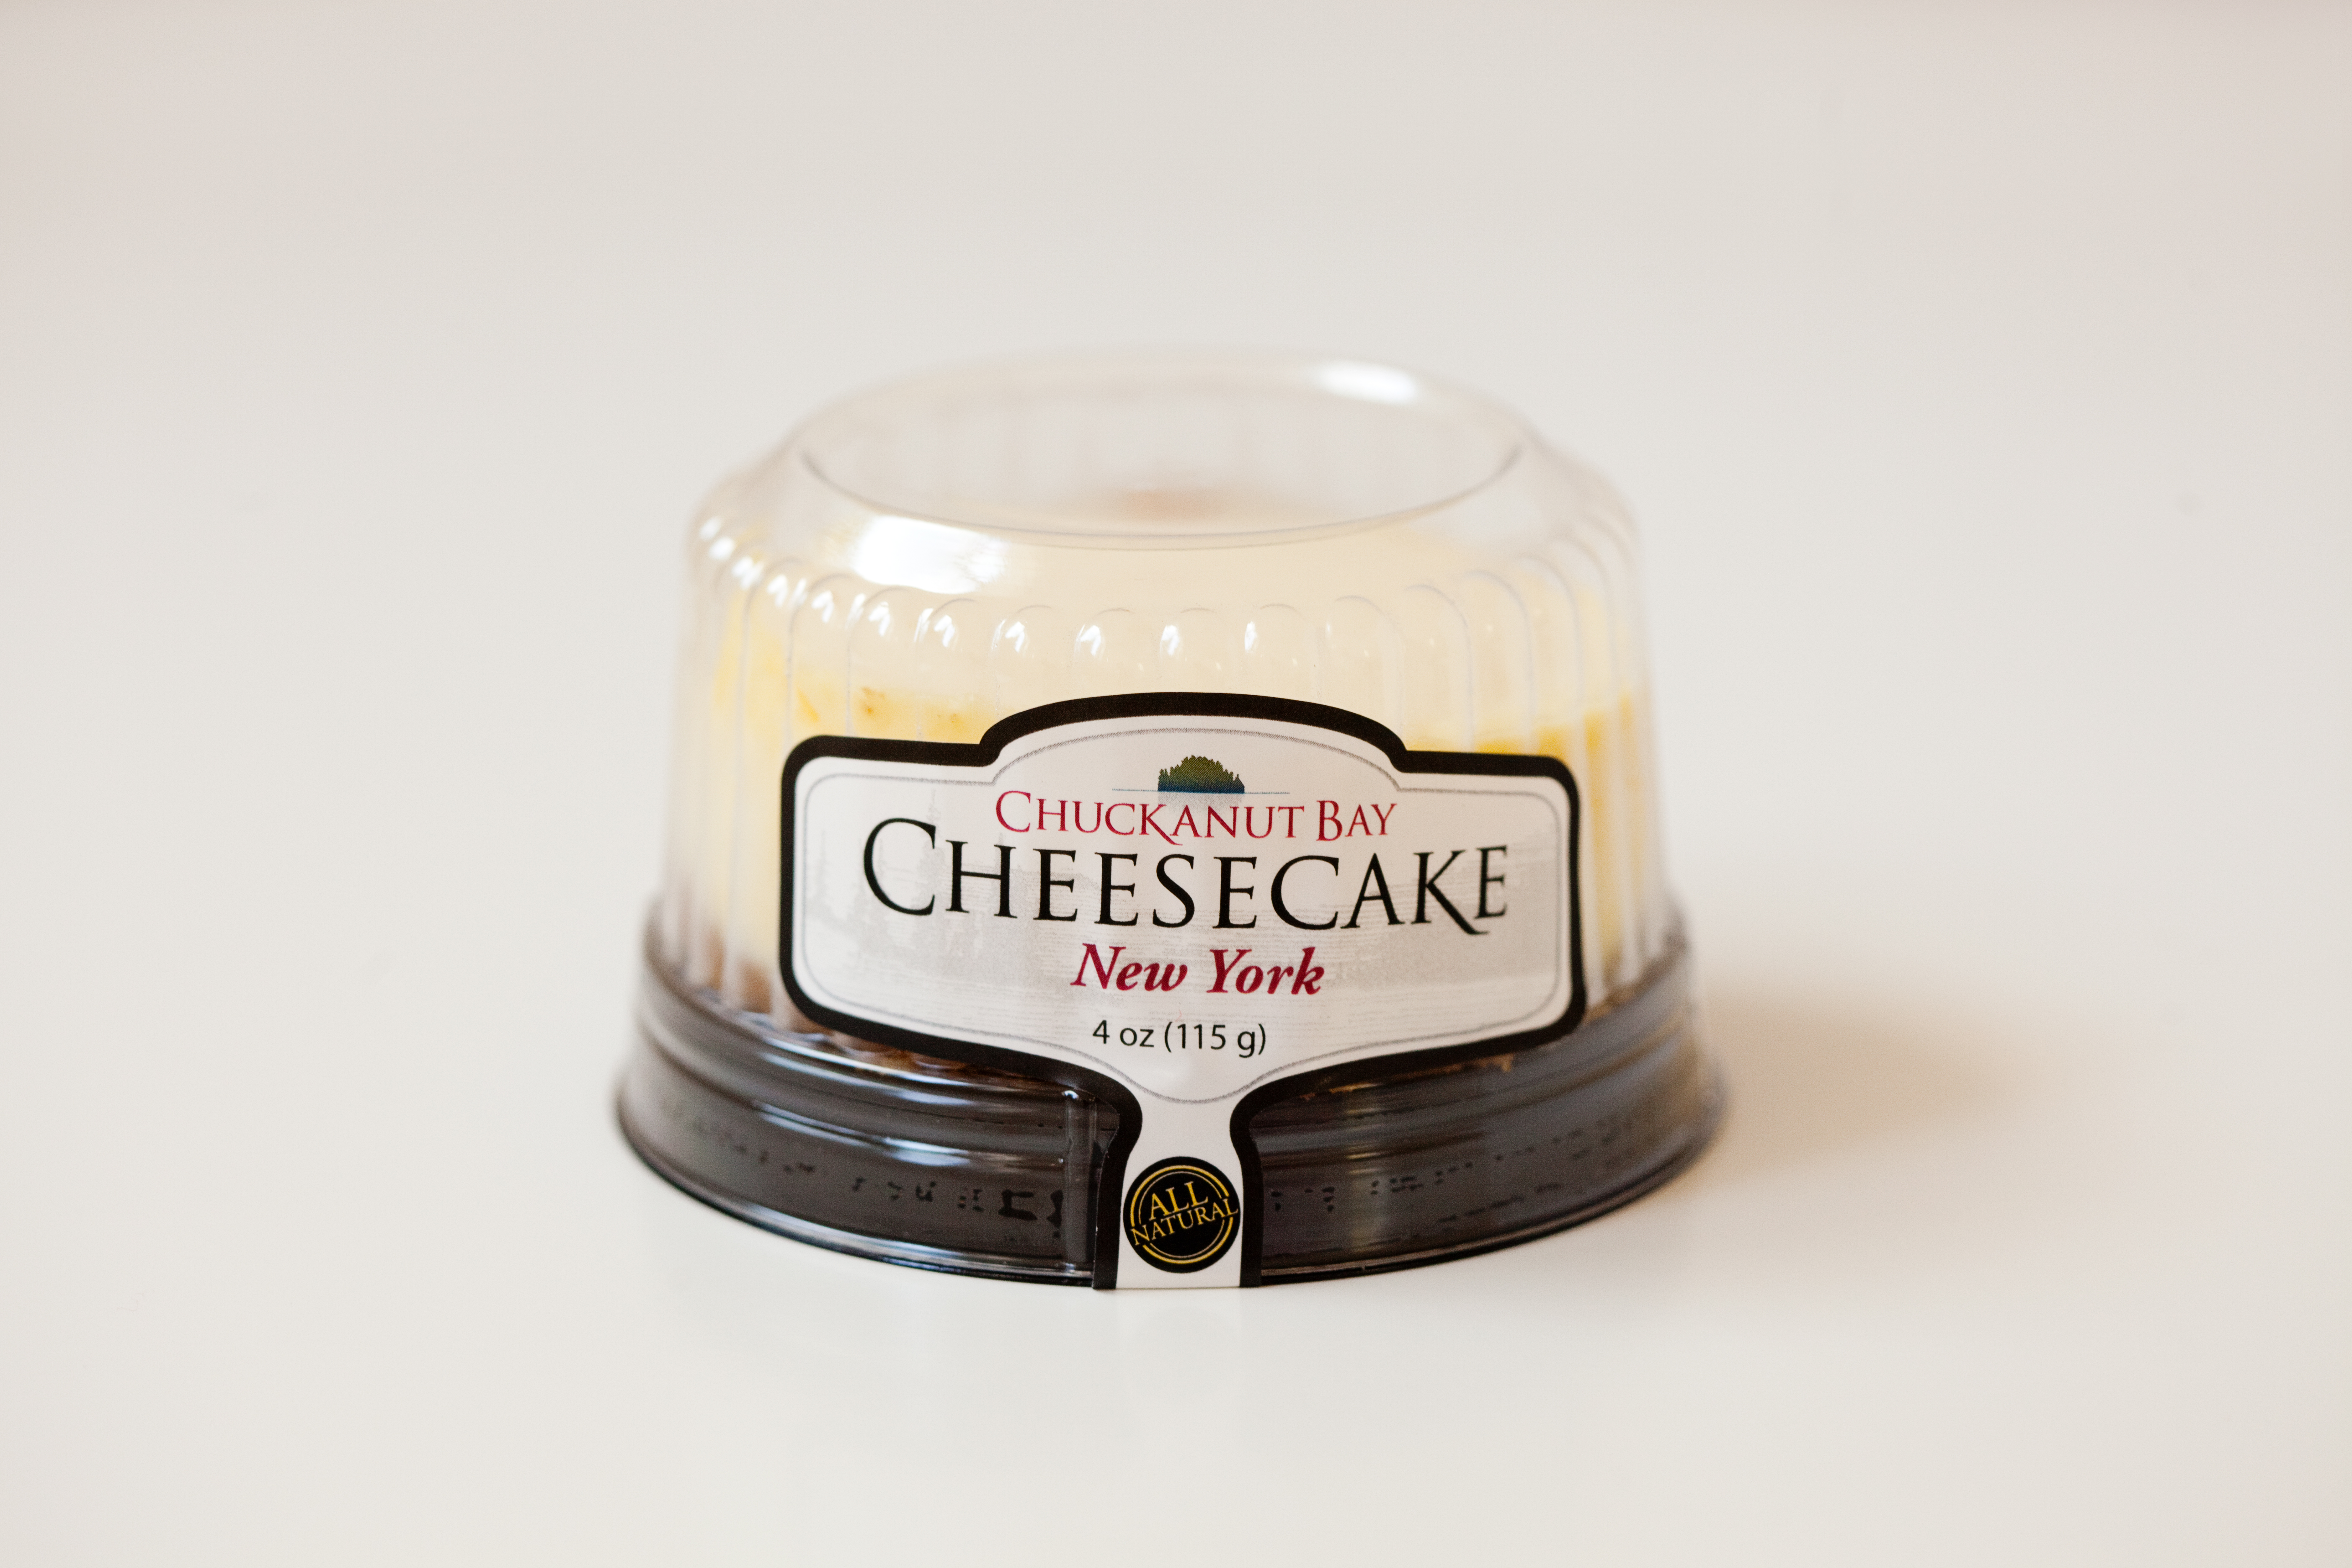 Chuckanut Bay 4 oz New York Cheesecake by Chuckanut Bay Foods